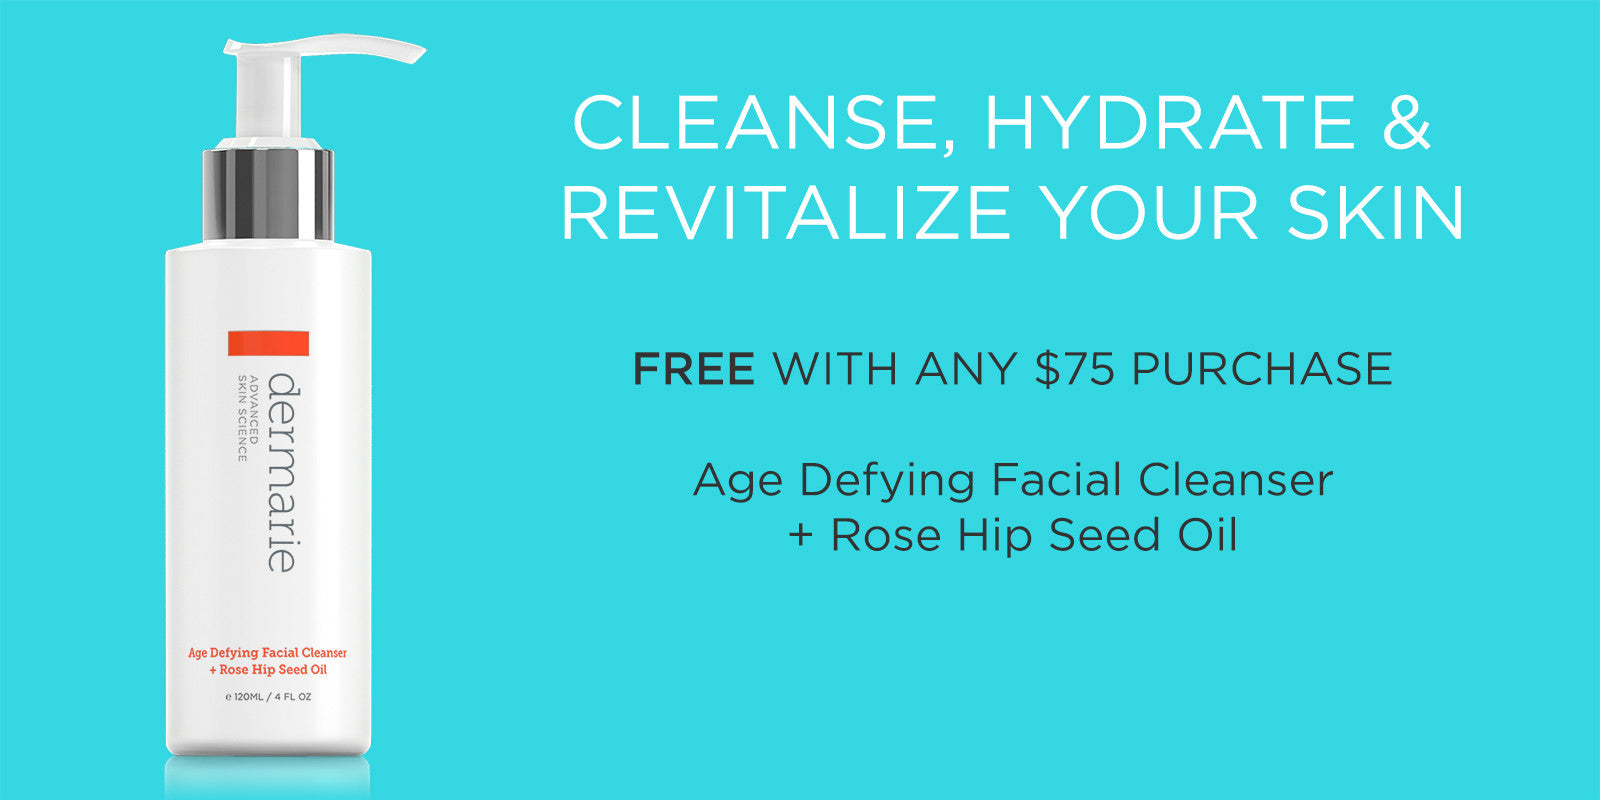 Free Facial Cleanser with any $75 purchase